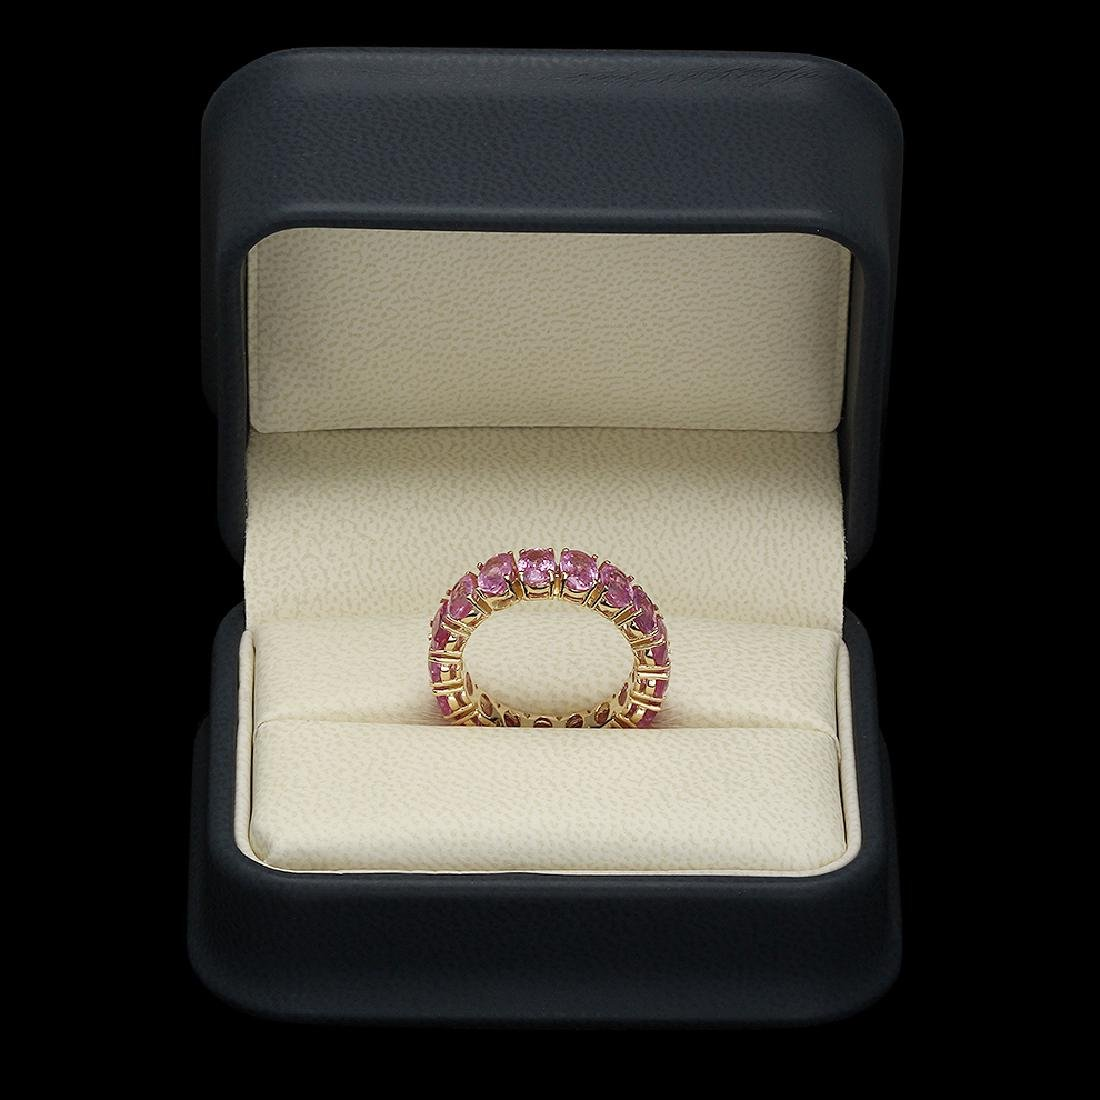 14K Gold 10.28ct Pink Sapphire Ring - 3